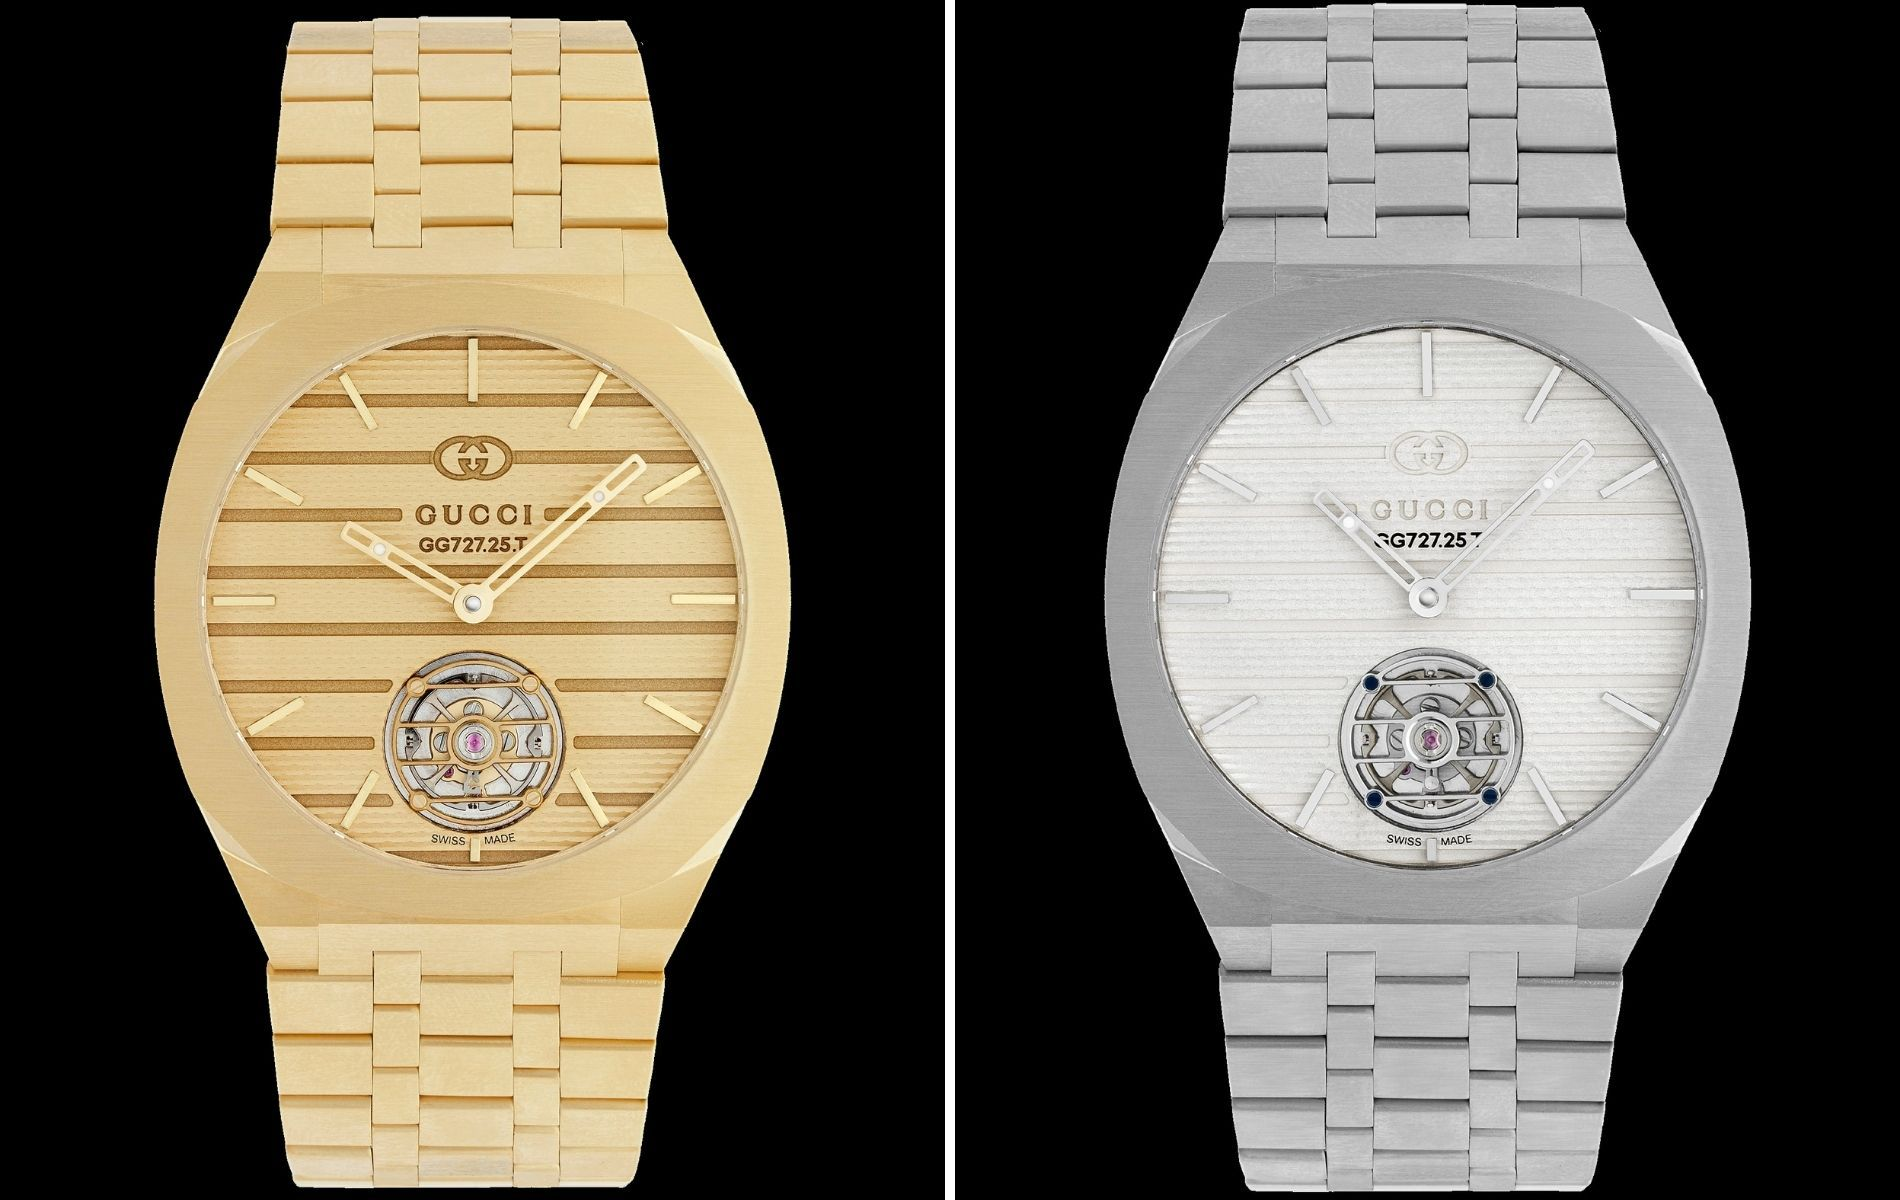 Gucci 25H tourbillon in yellow gold and platinum